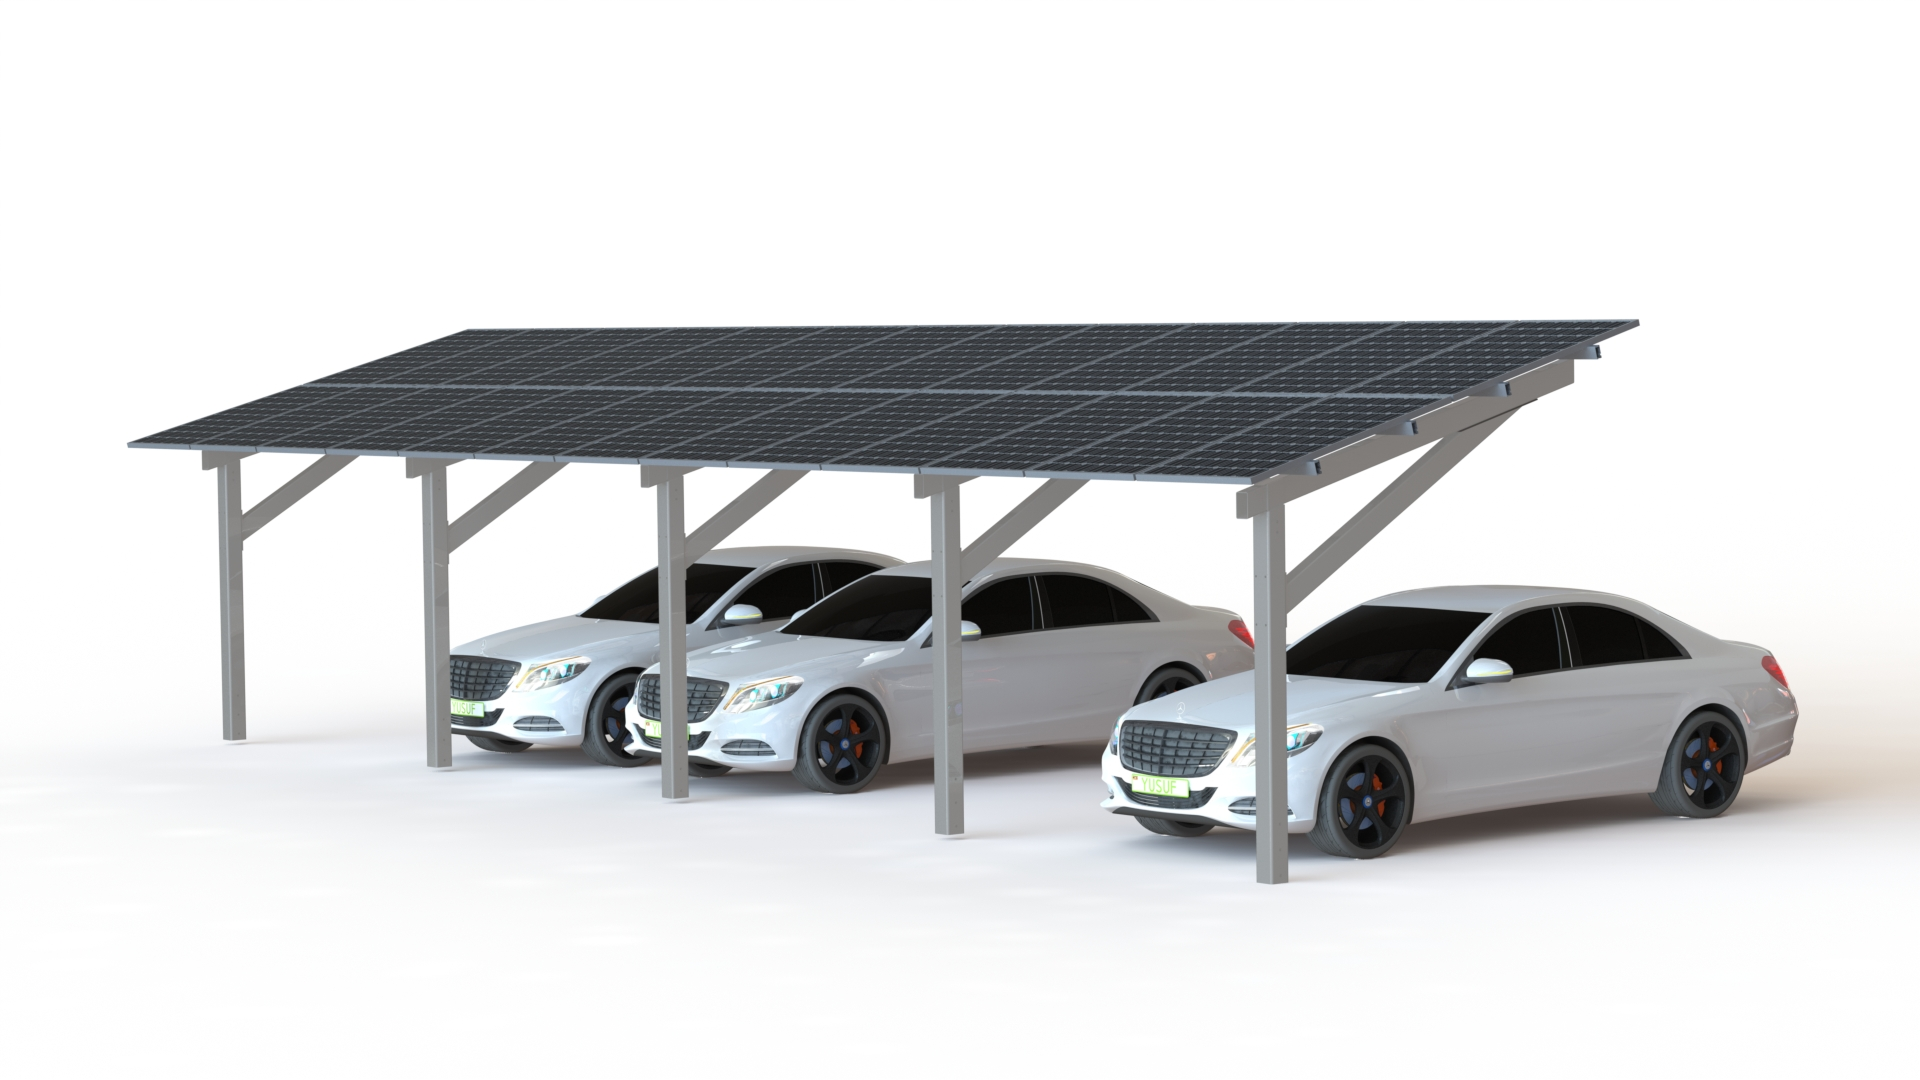 Solar Canopy Part Of The Eport Solar Carport Range From